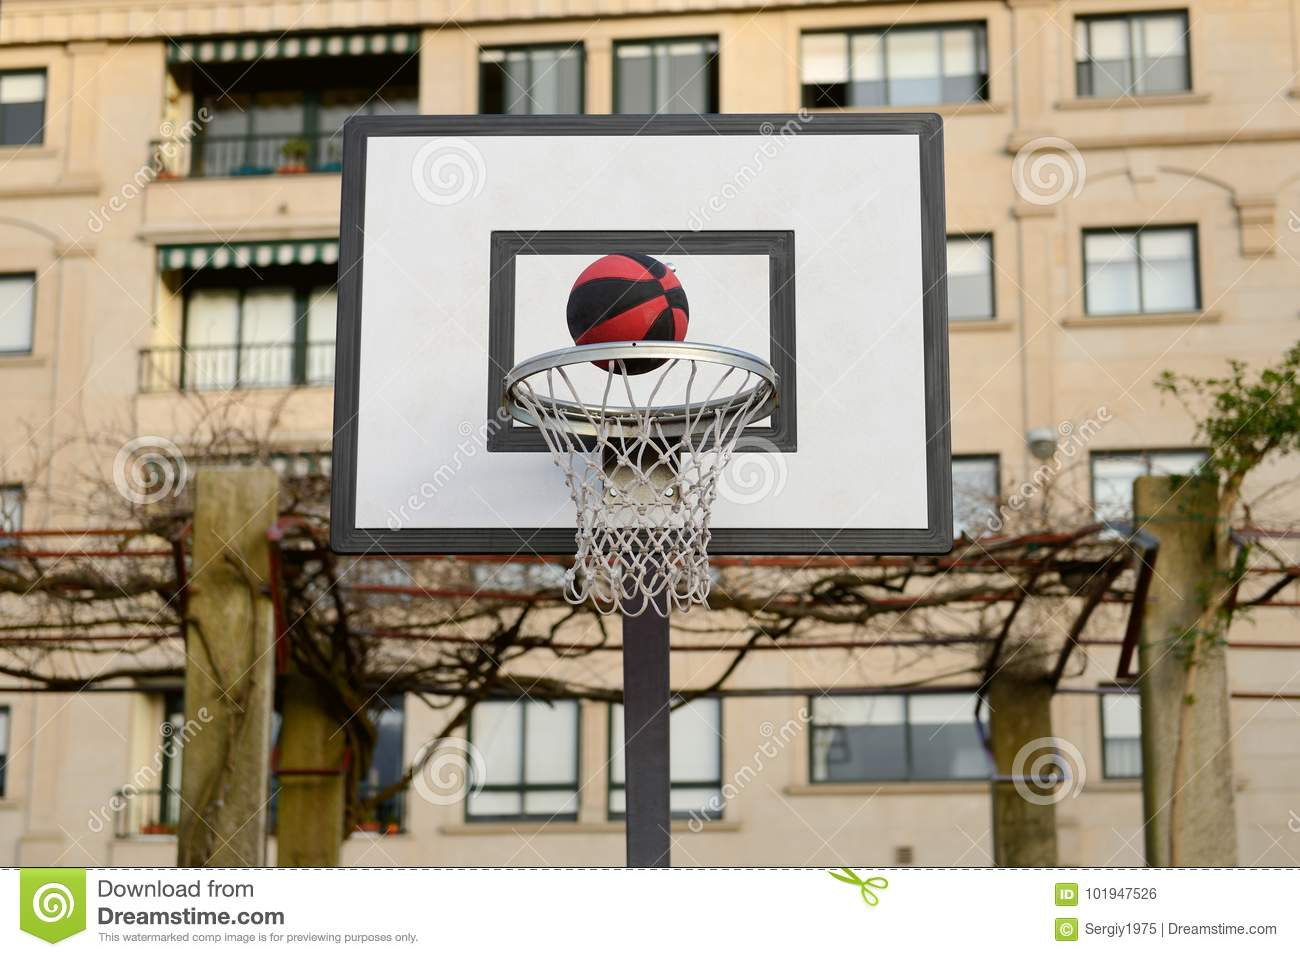 Ball flying into the basketball net